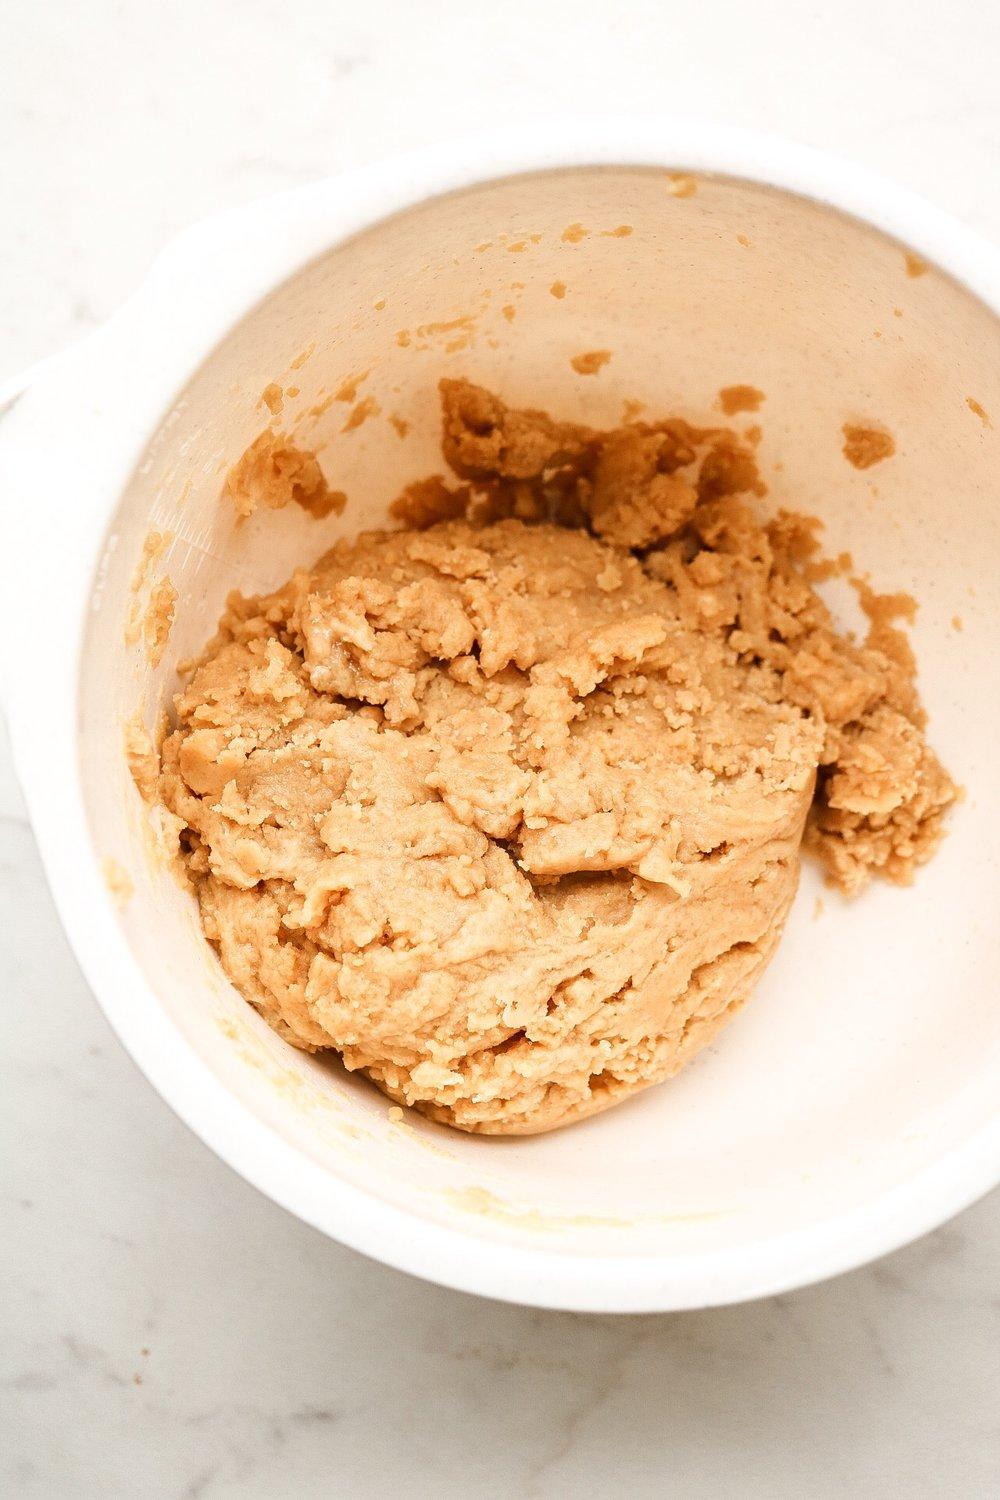 The cookie dough - just roll into balls and place on your baking tray!